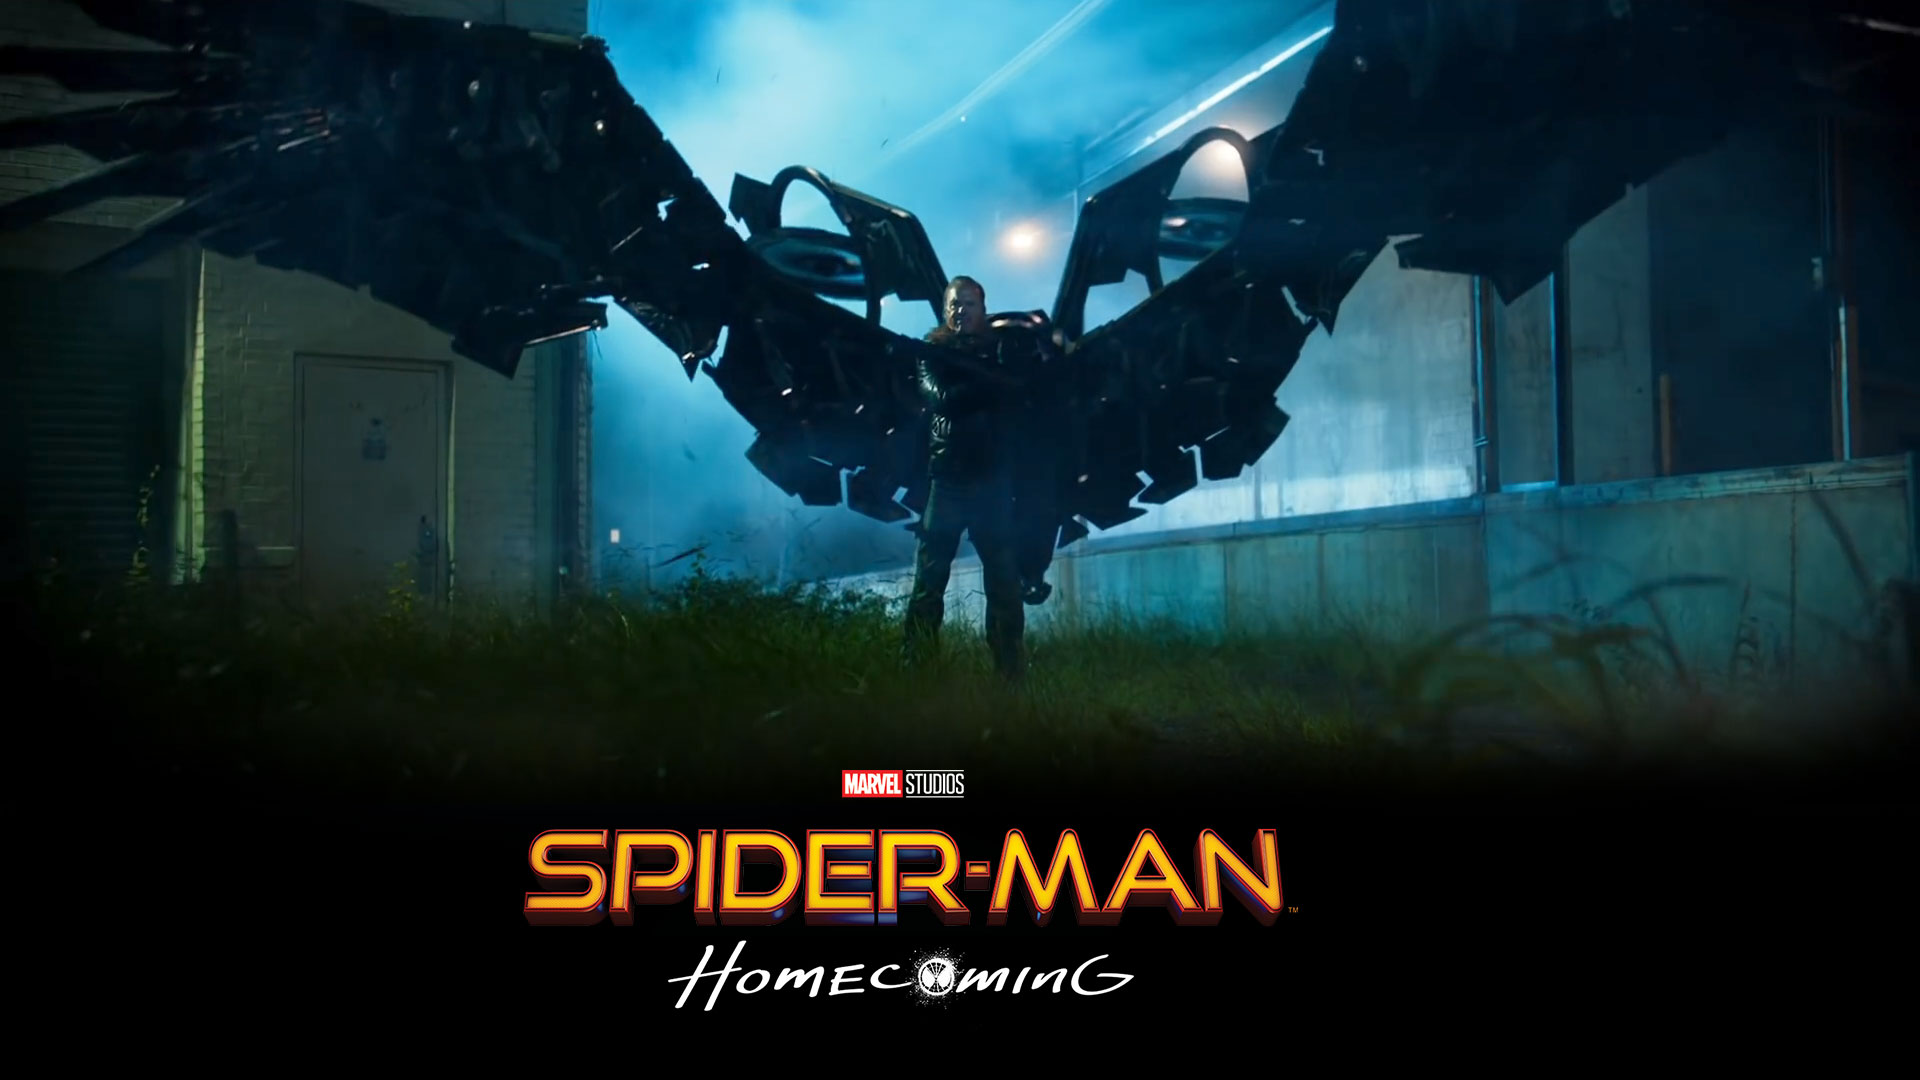 41 Vulture Spider Man Homecoming Wallpaper On Wallpapersafari